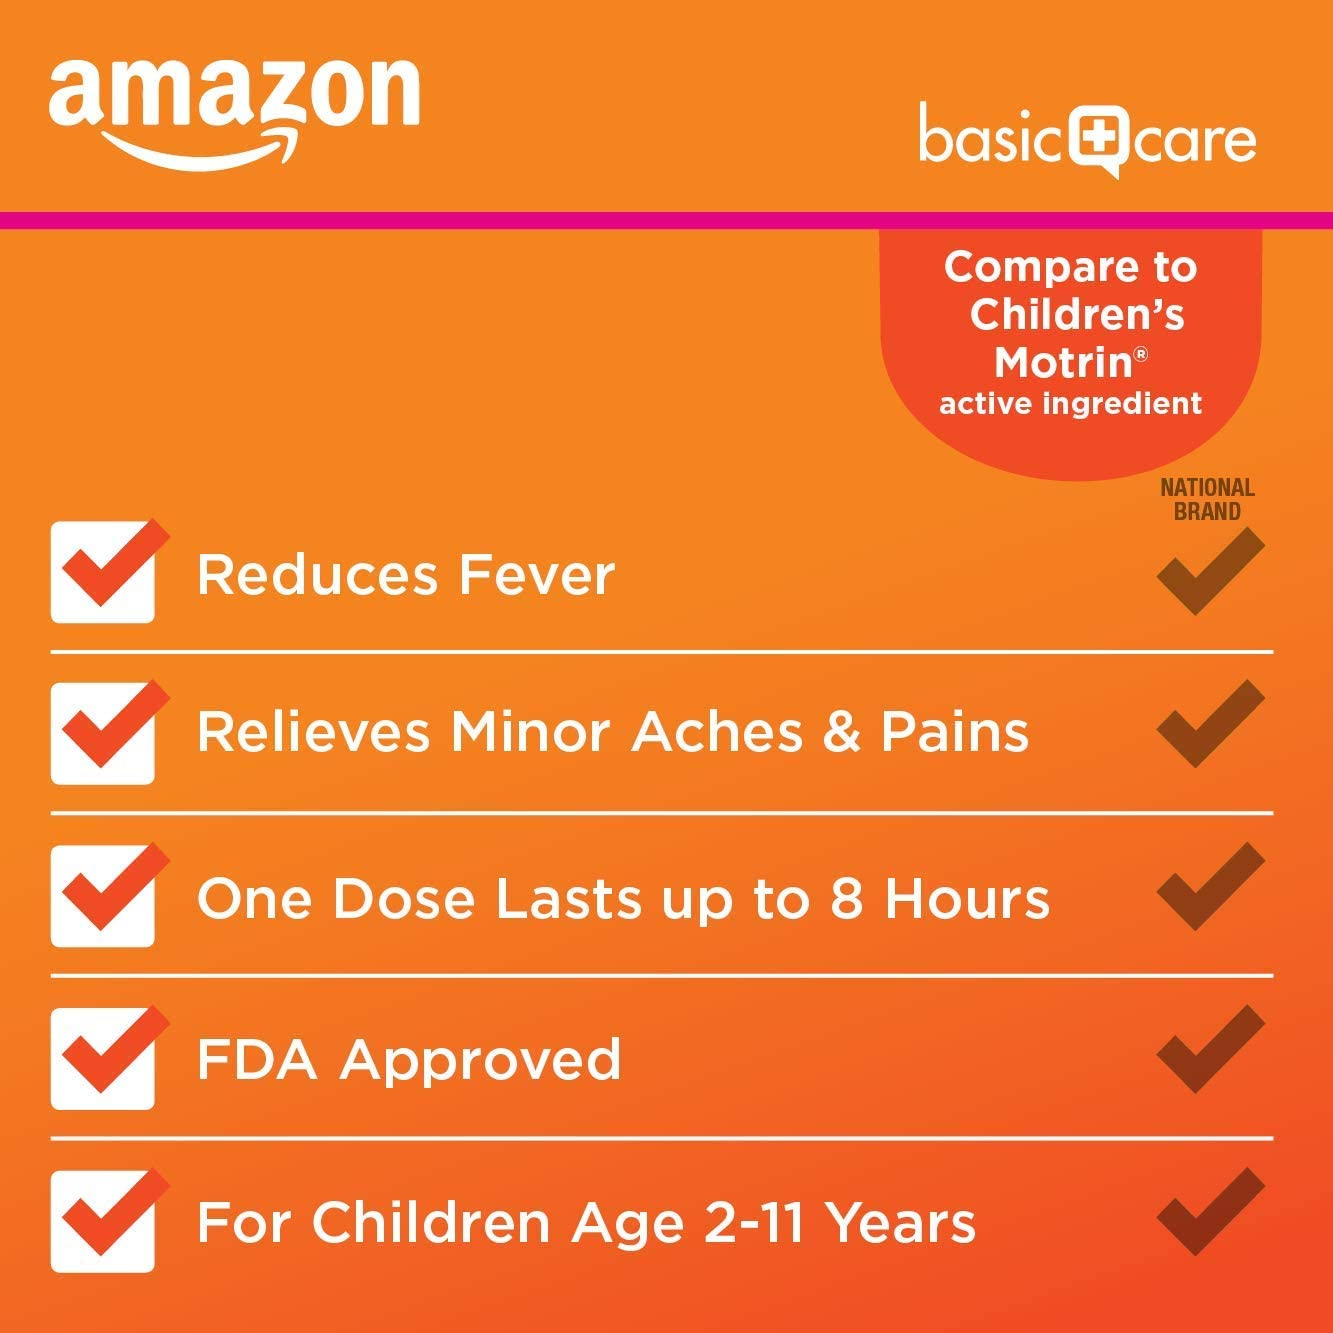 Basic Care Children's Ibuprofen Oral Suspension 100 mg per 5 mL (NSAID), Pain Reliever and Fever Reducer, Berry Flavor, 8 Fluid Ounces: Health & Personal Care